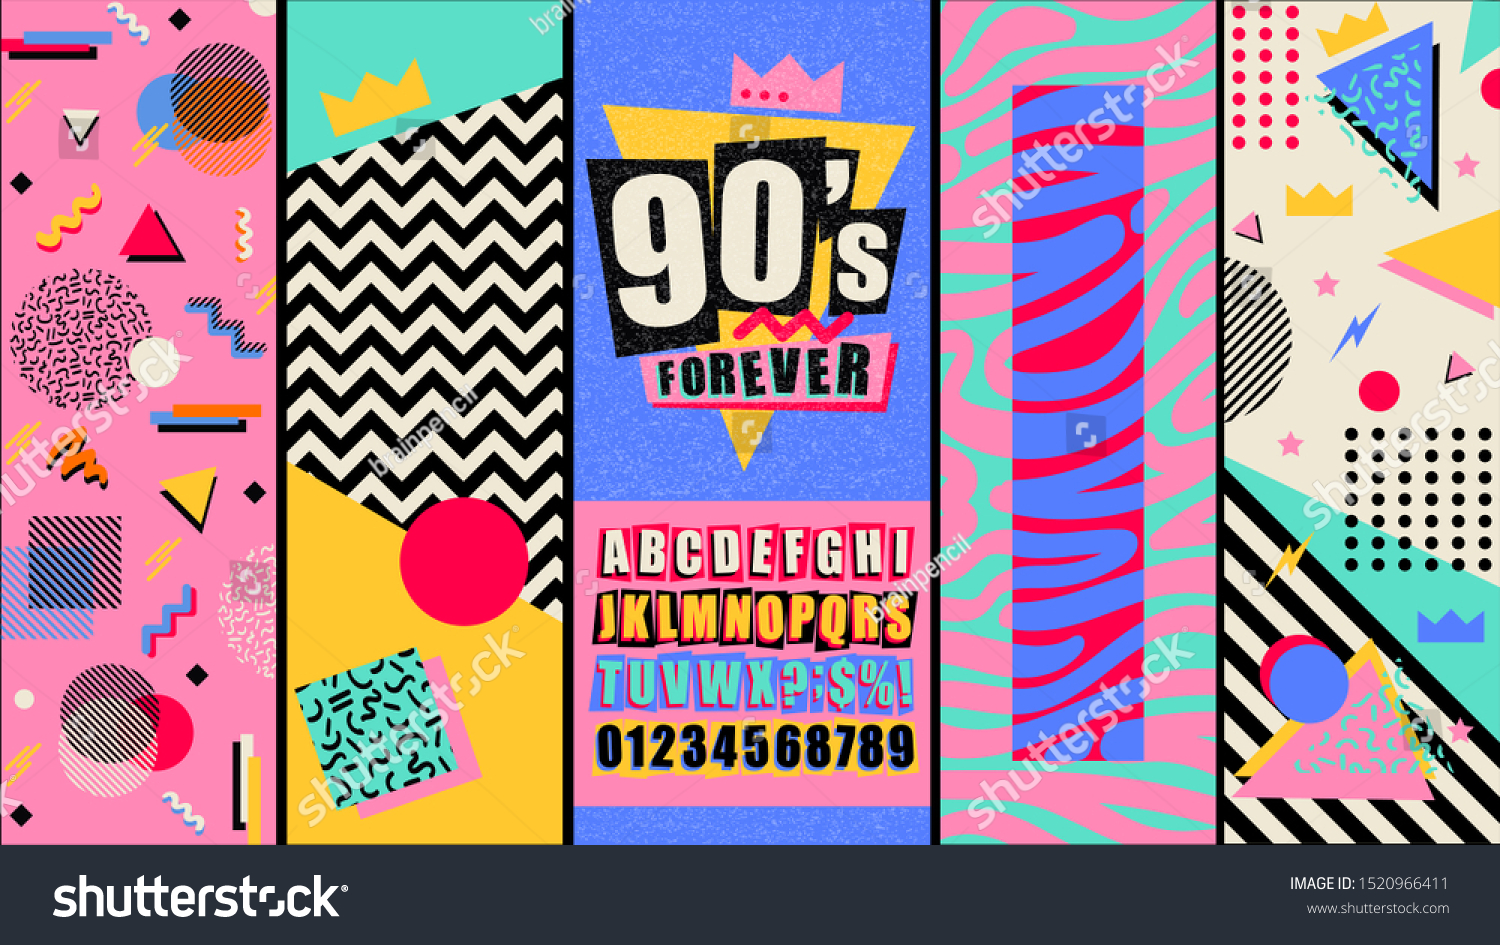 90s and 80s poster. Nineties forever. Retro style textures and alphabet mix. Aesthetic fashion background and eighties graphic. Pop and rock music party event template. Vintage vector poster, banner. #1520966411